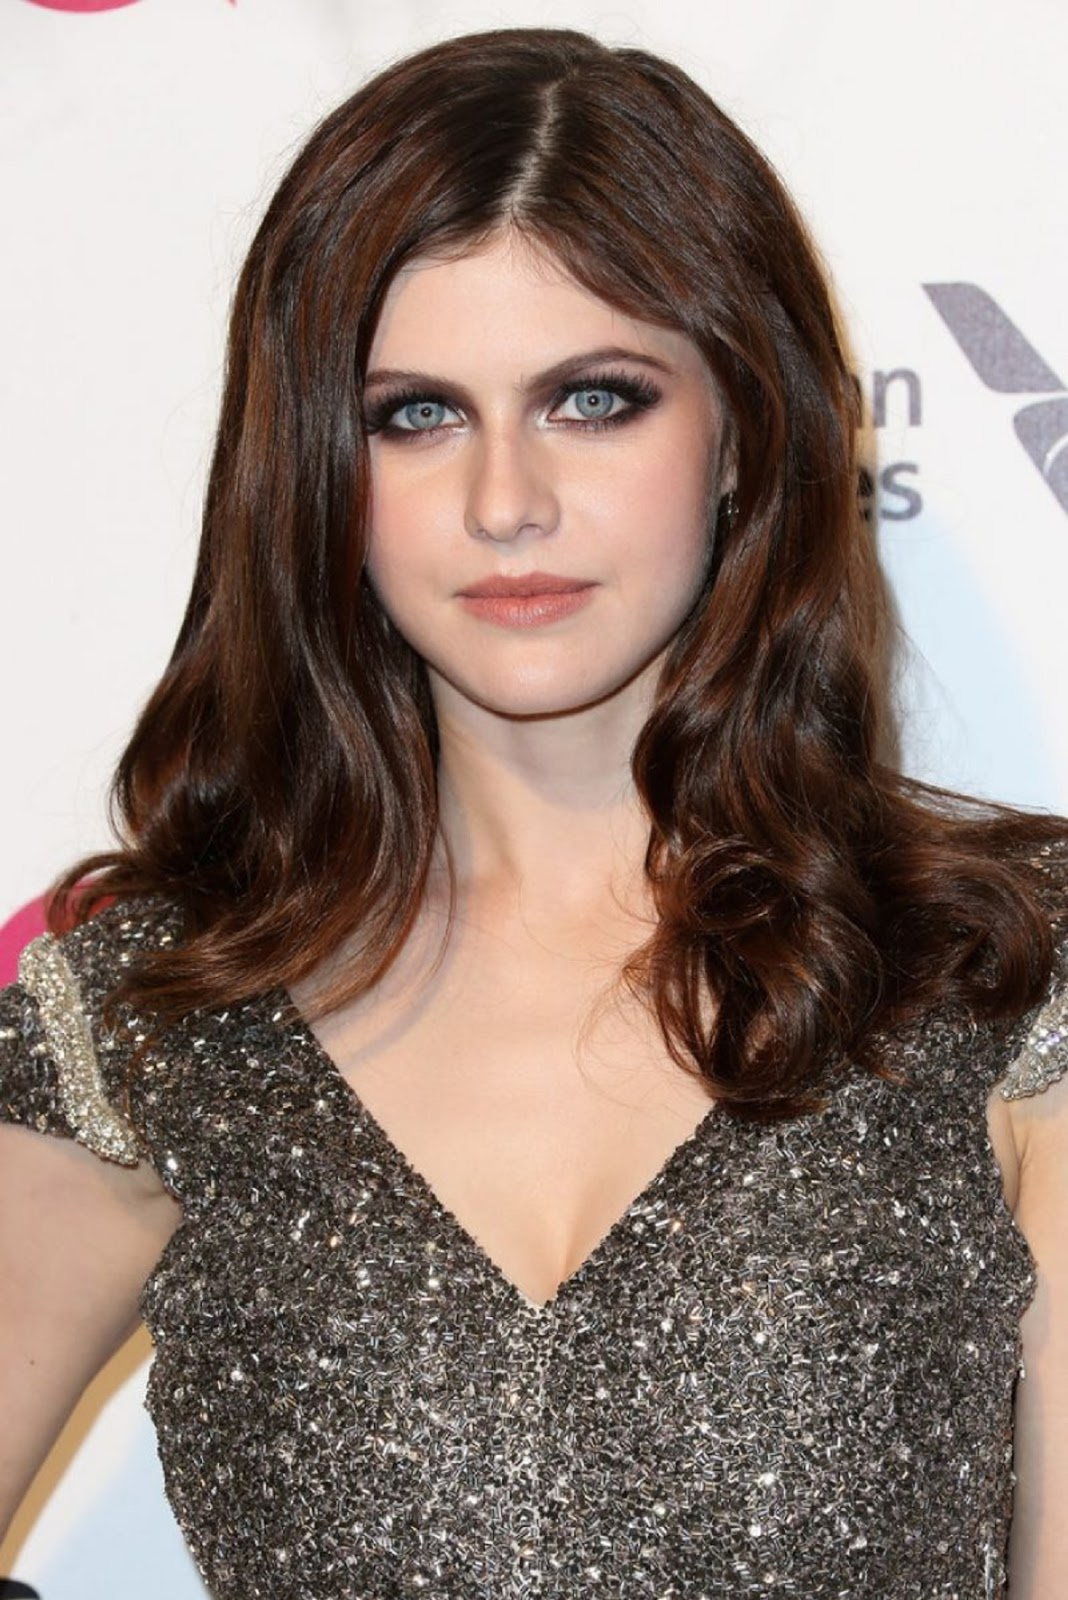 STAR CELEBRITY WALLPAPERS: Alexandra Daddario HD Wallpapers